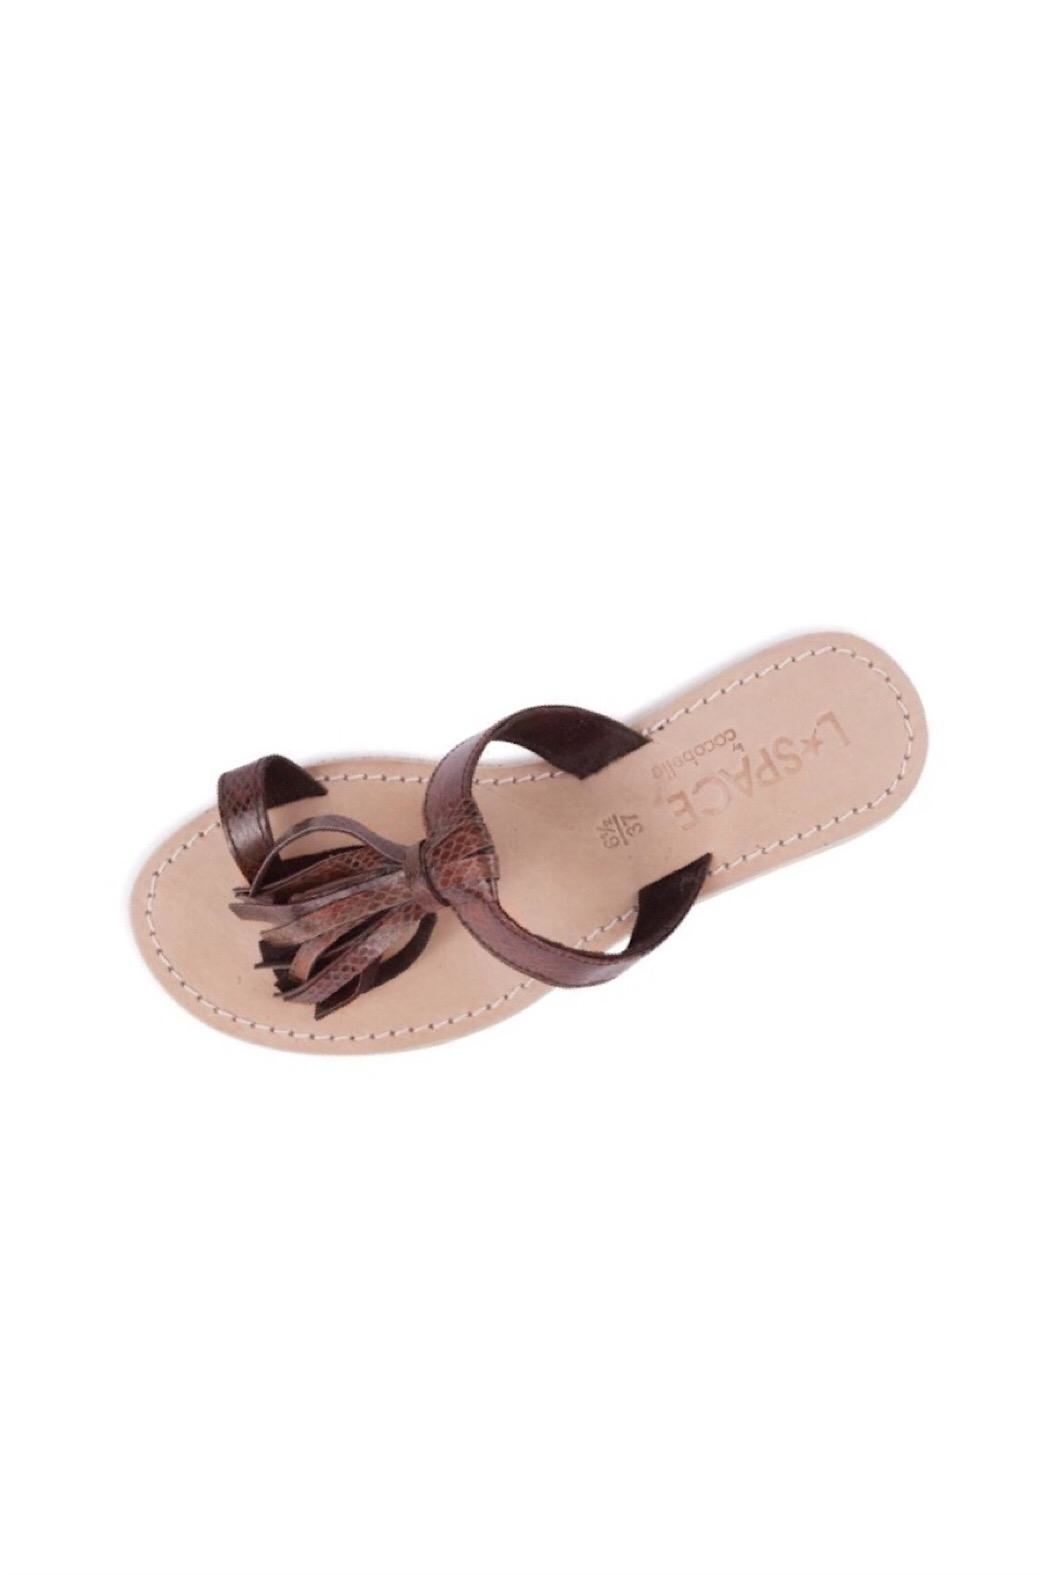 CocoBelle Leather Fringe Sandals - Main Image